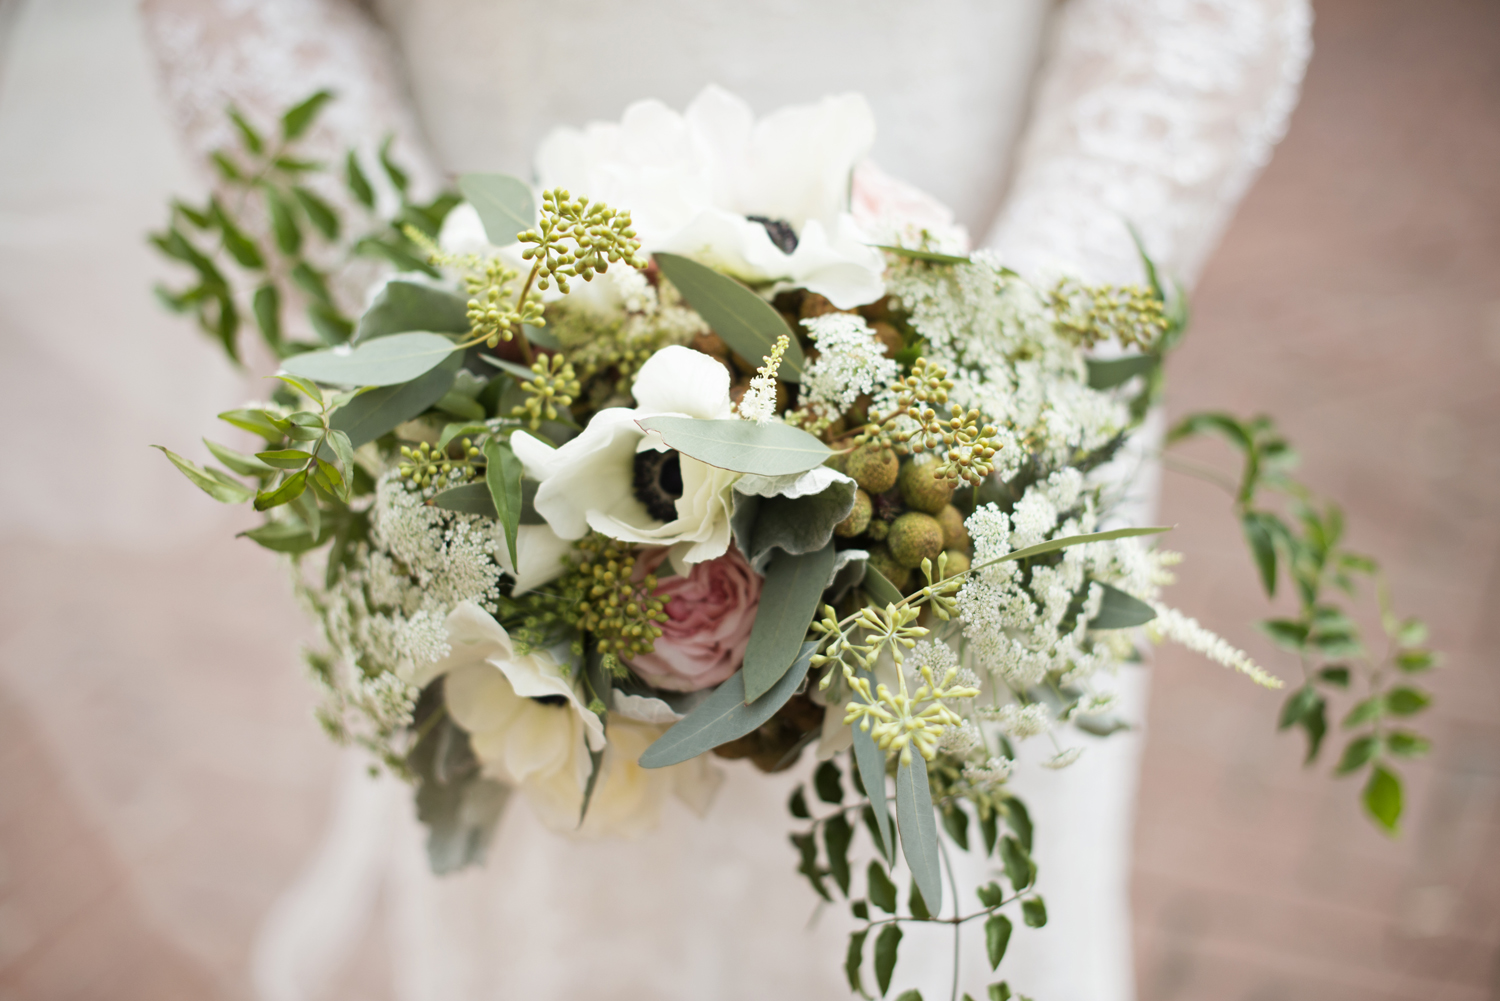 White and green bridal bouquet with pink carnations